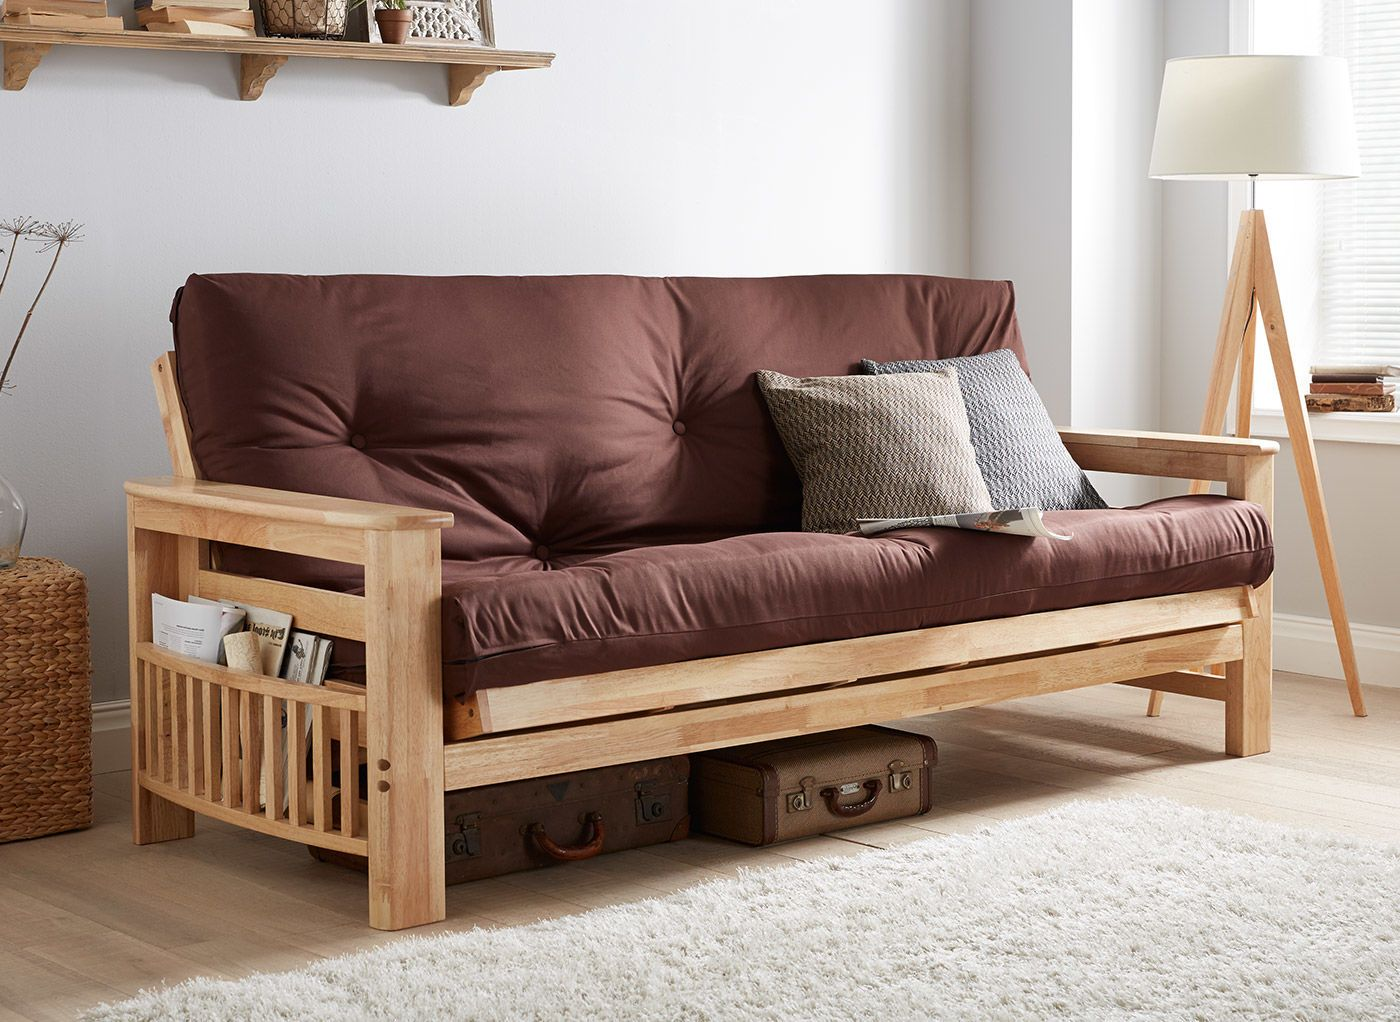 Sofa Bed Guest Room Ideas Pin By Homysofa On Sofas Couches Sofa Bed Sofa Sofa Uk